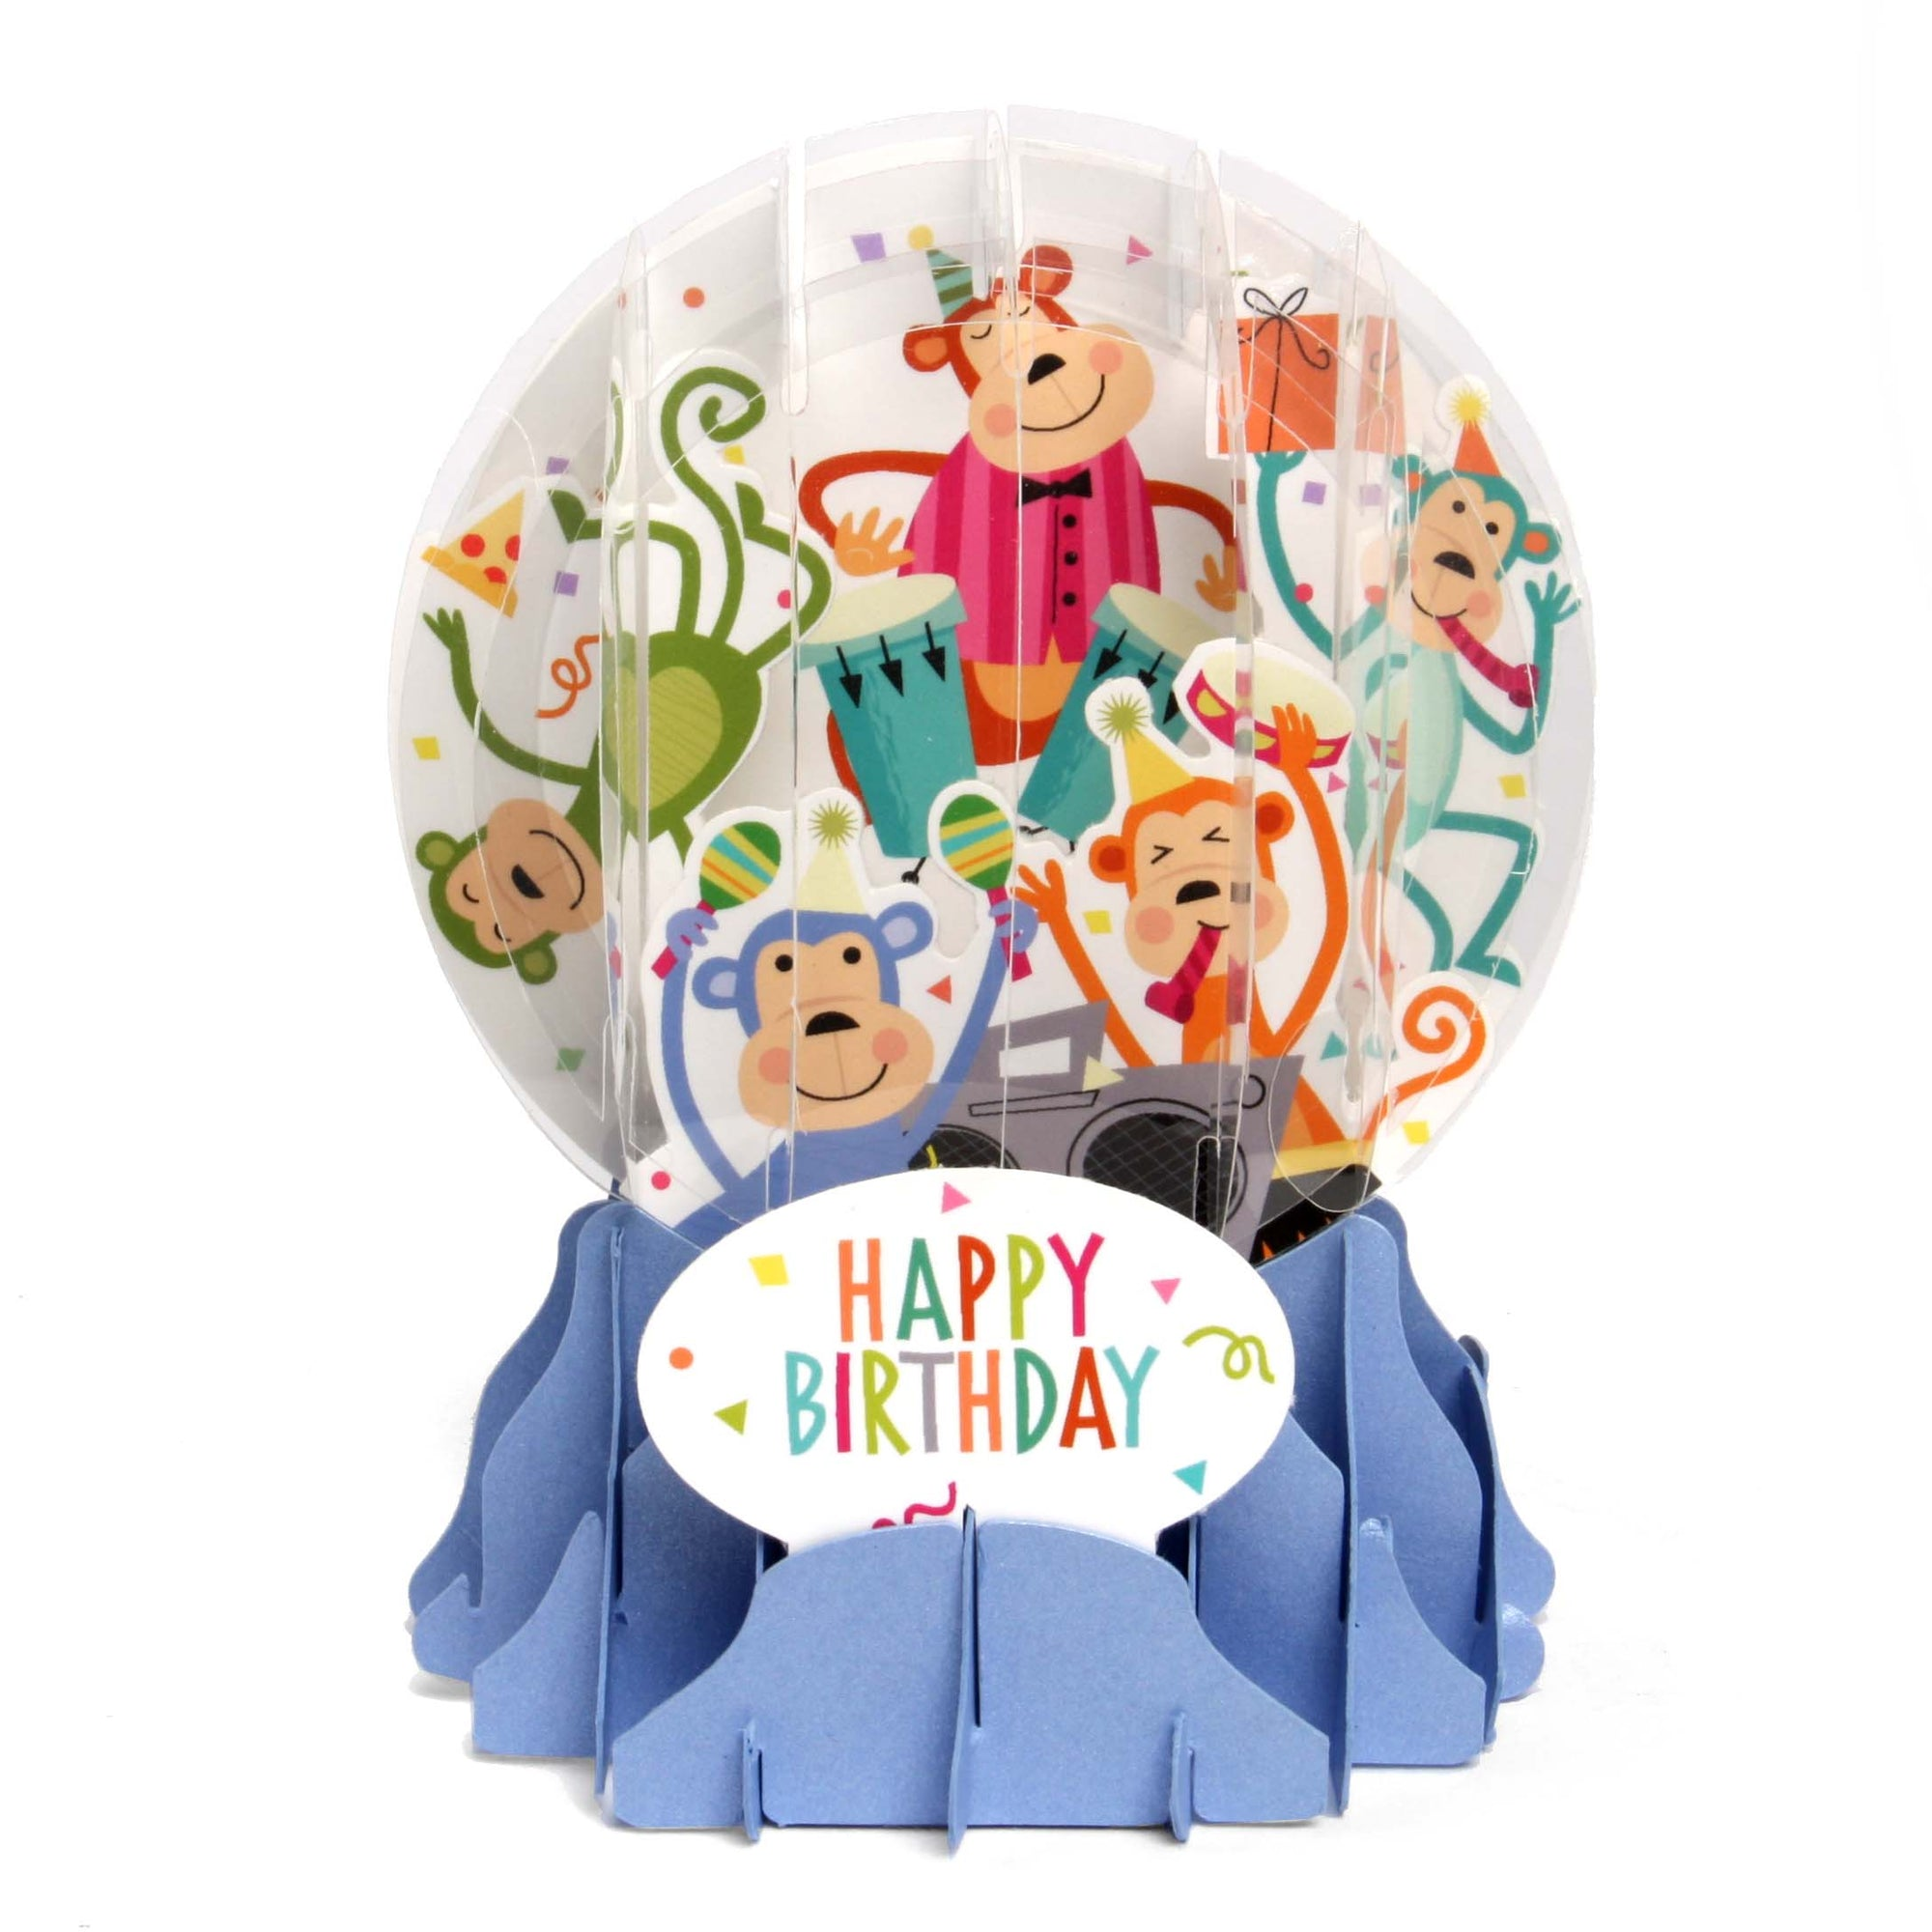 Birthday Monkeys Pop-Up Snow Globe Card - Heart of the Home PA